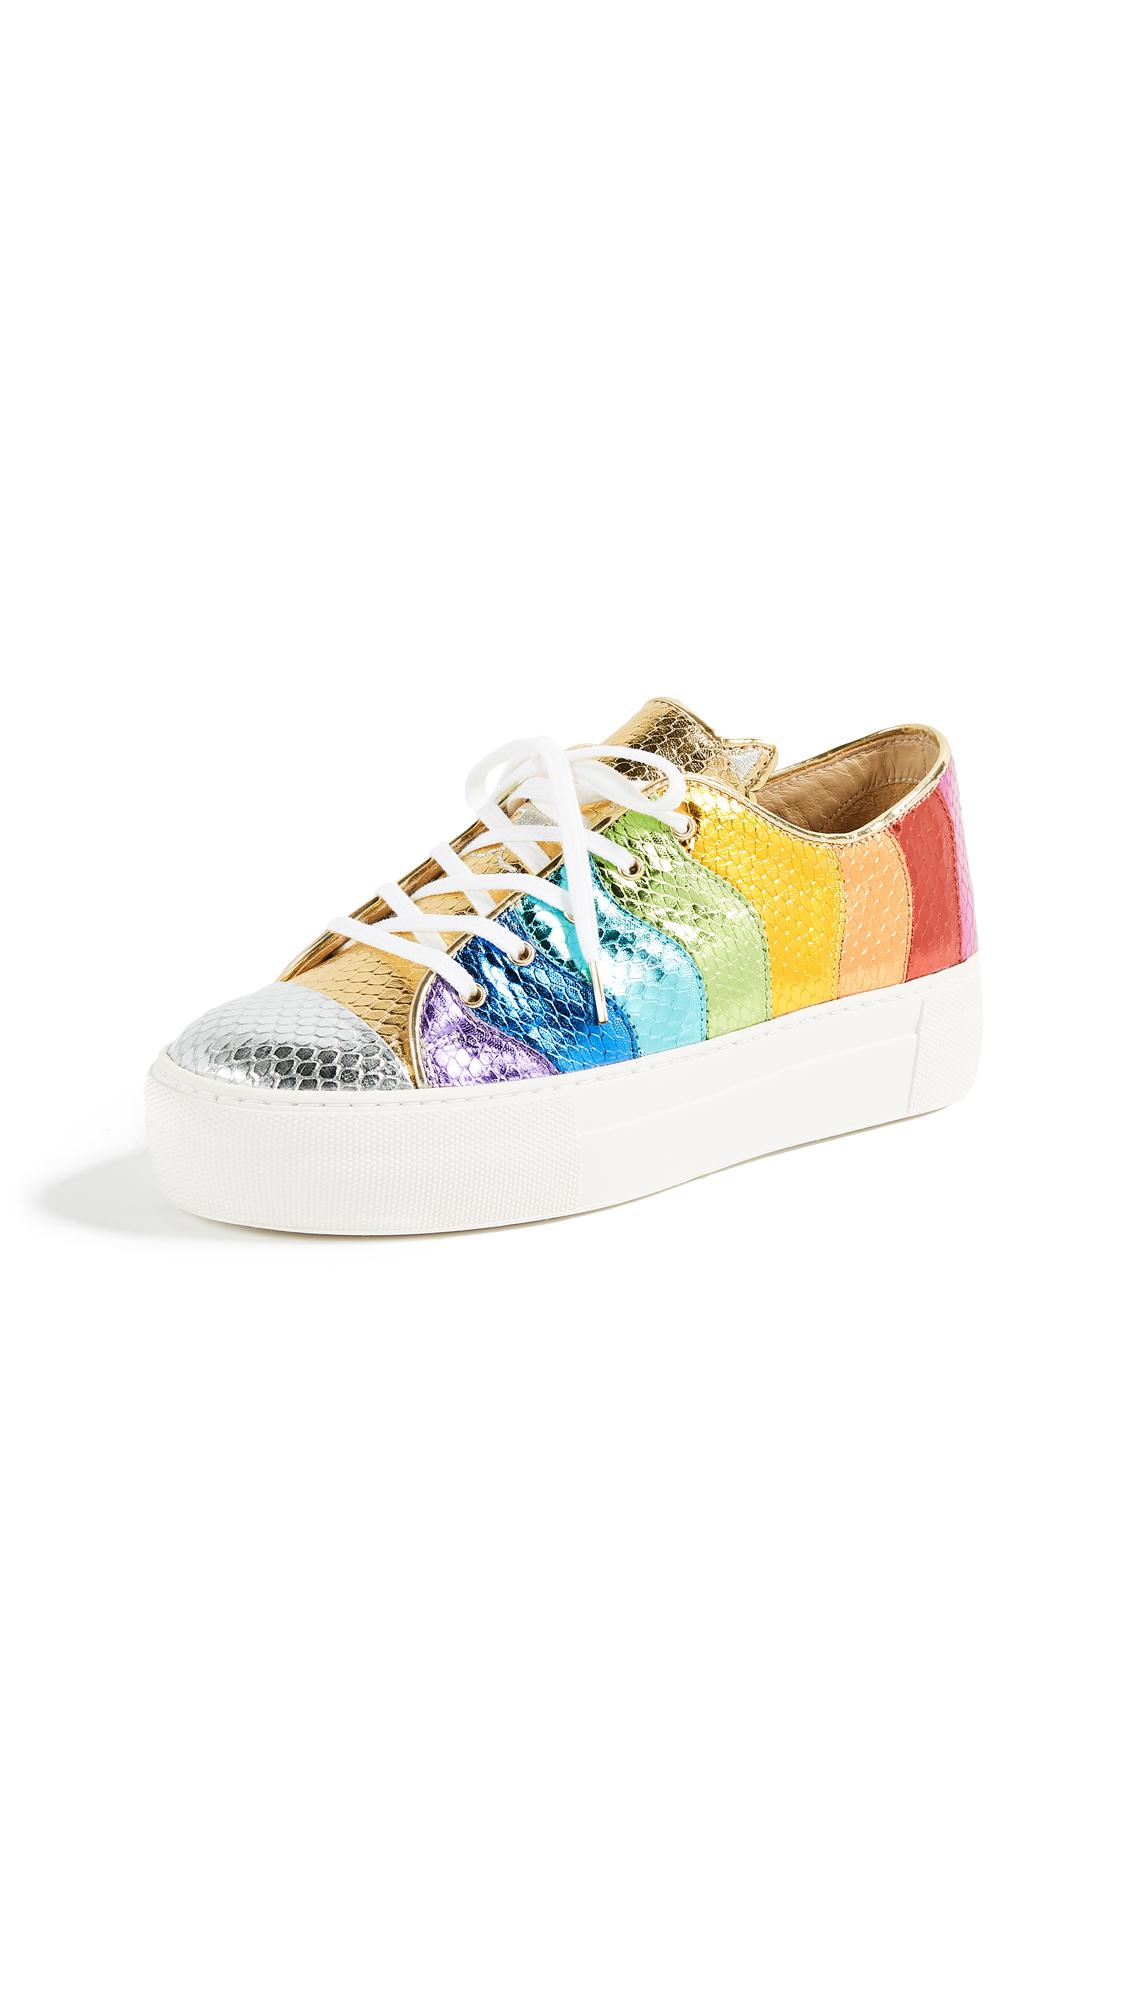 Multicolor Metallic Purrfect Sneakers Charlotte Olympia